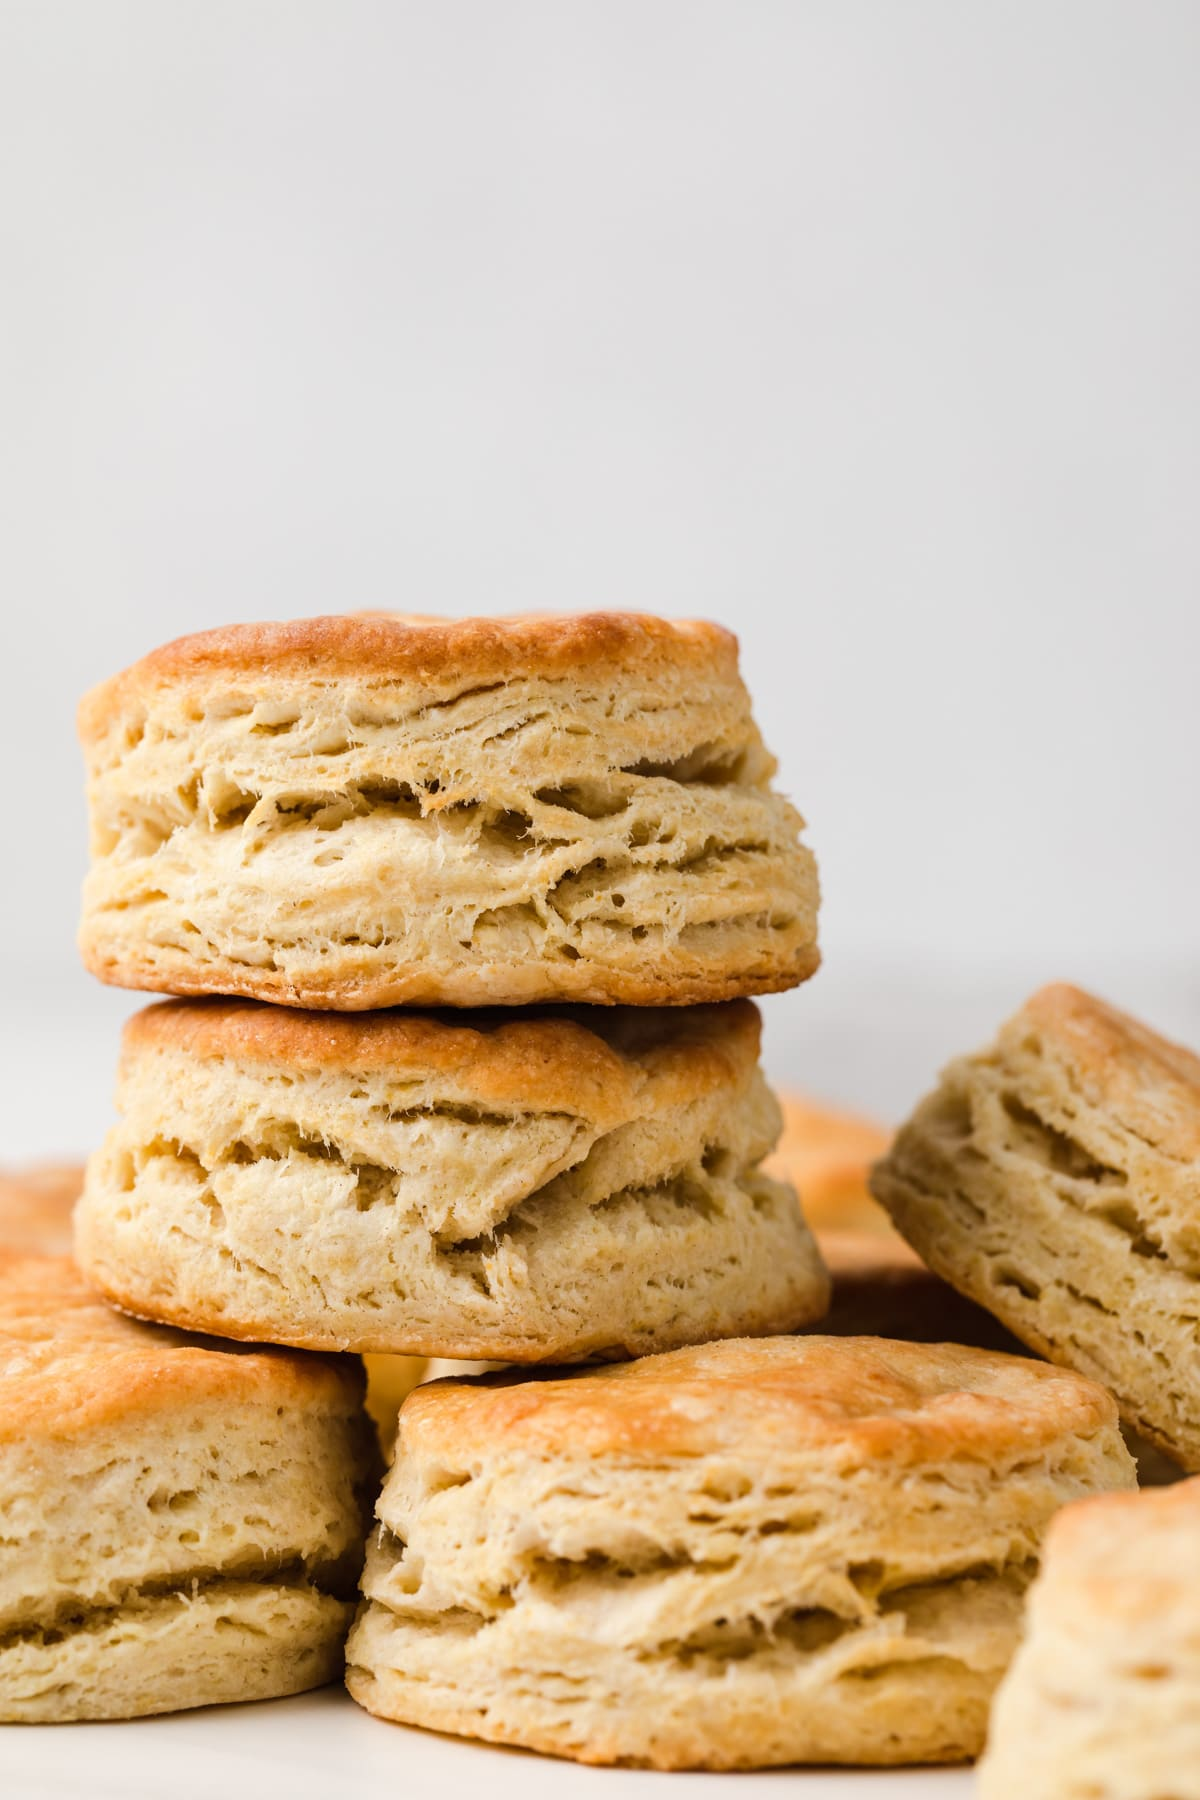 two biscuits stacked on top of single layer of biscuits